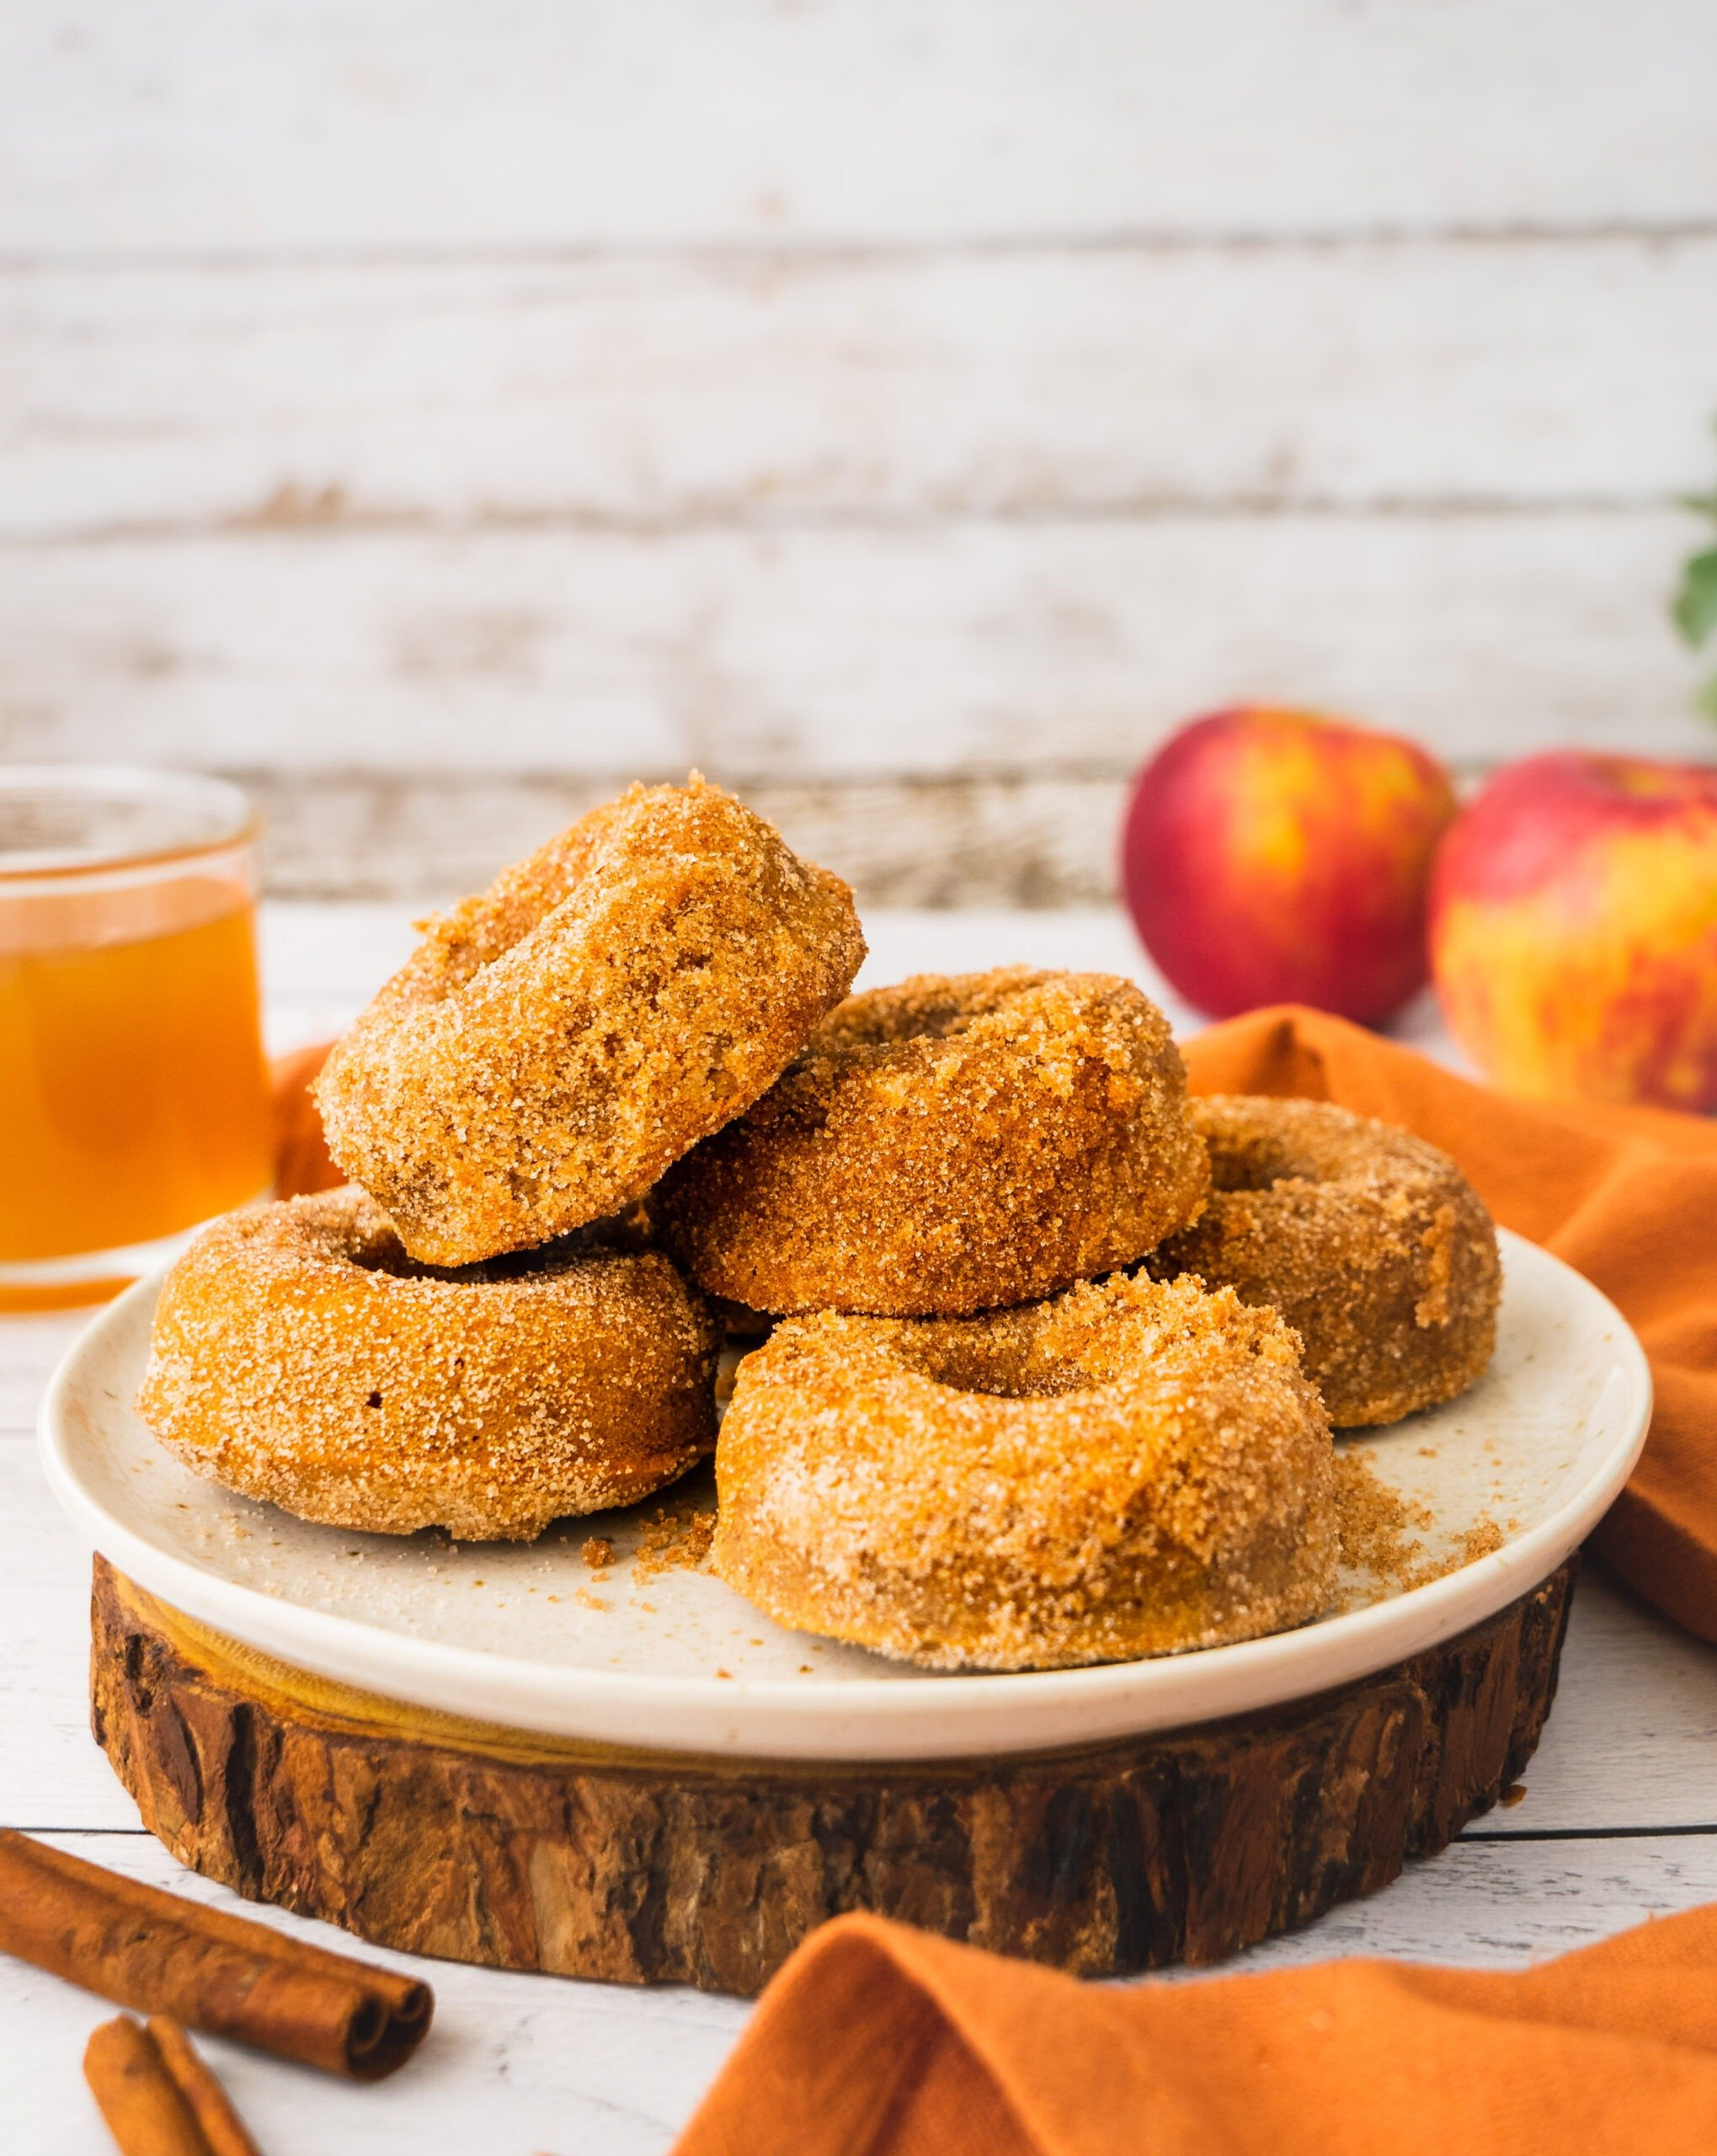 A plate of sweet baked apple cider donuts coated i cinnamon sugar. There is a bite in one of the donuts and a glass of hot apple cider in the back.